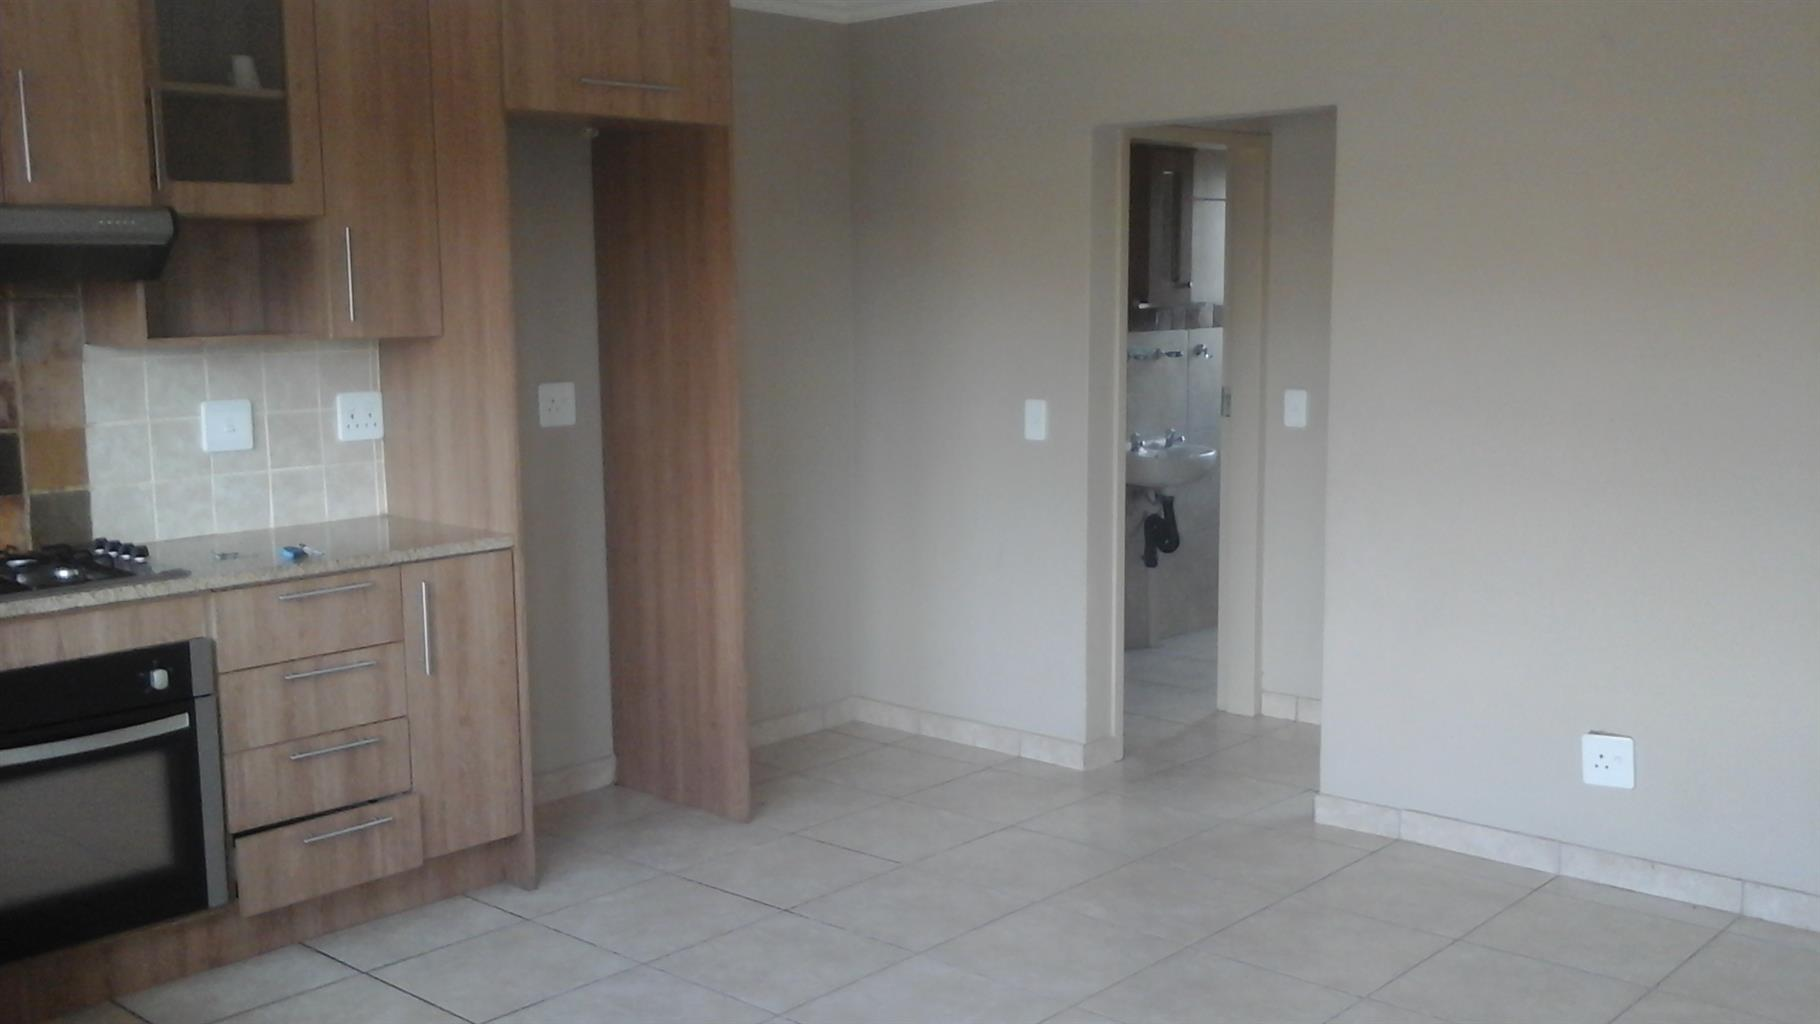 LOVELY 1 BEDROOM UNIT ON FIRST FLOOR, ANDEON, PRETORIA